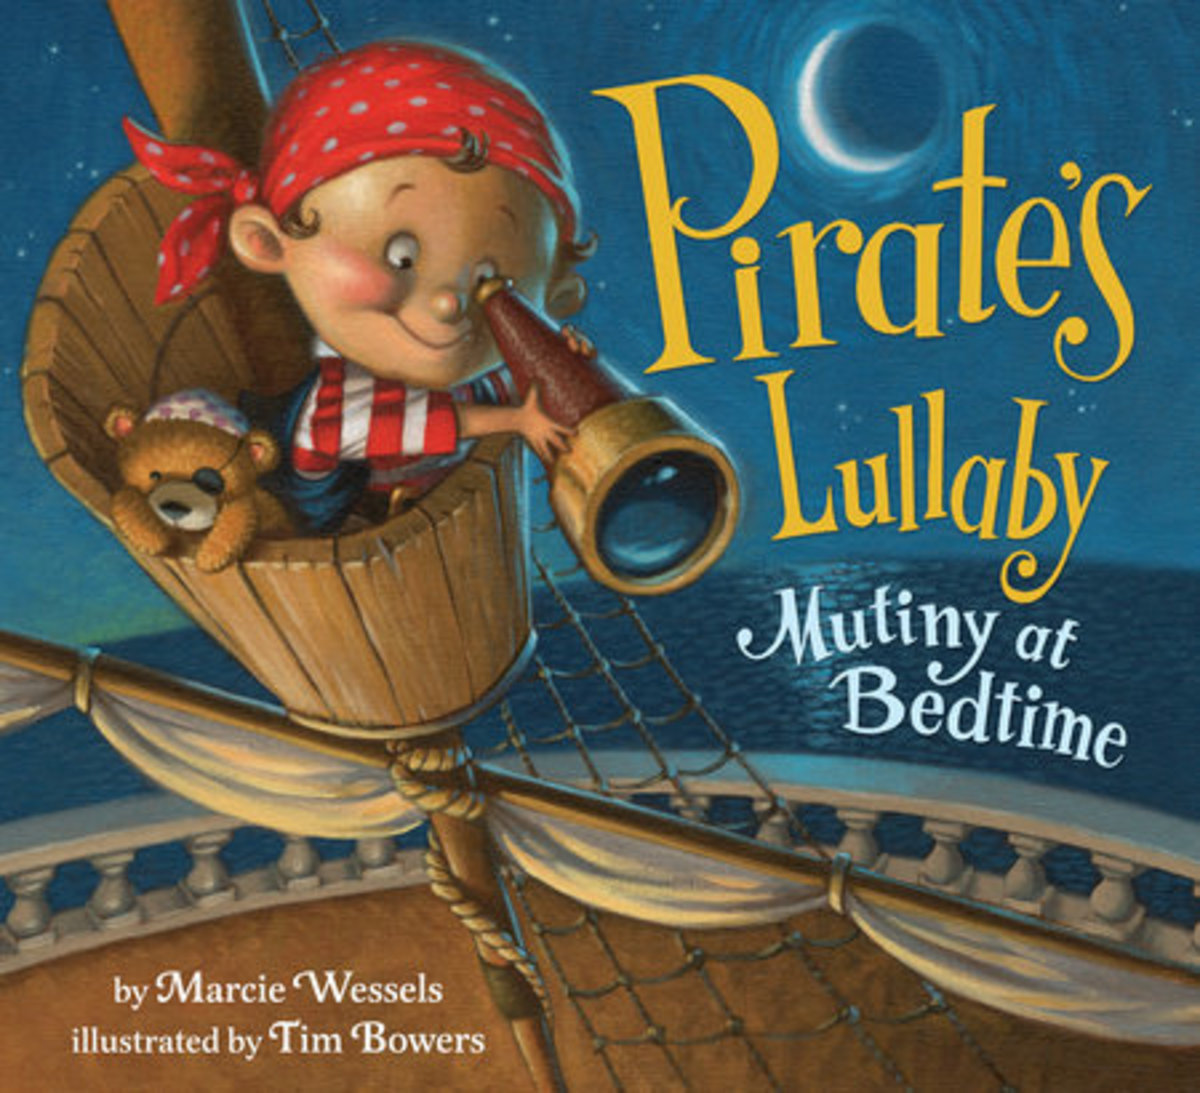 pirates-lullaby-book-cover